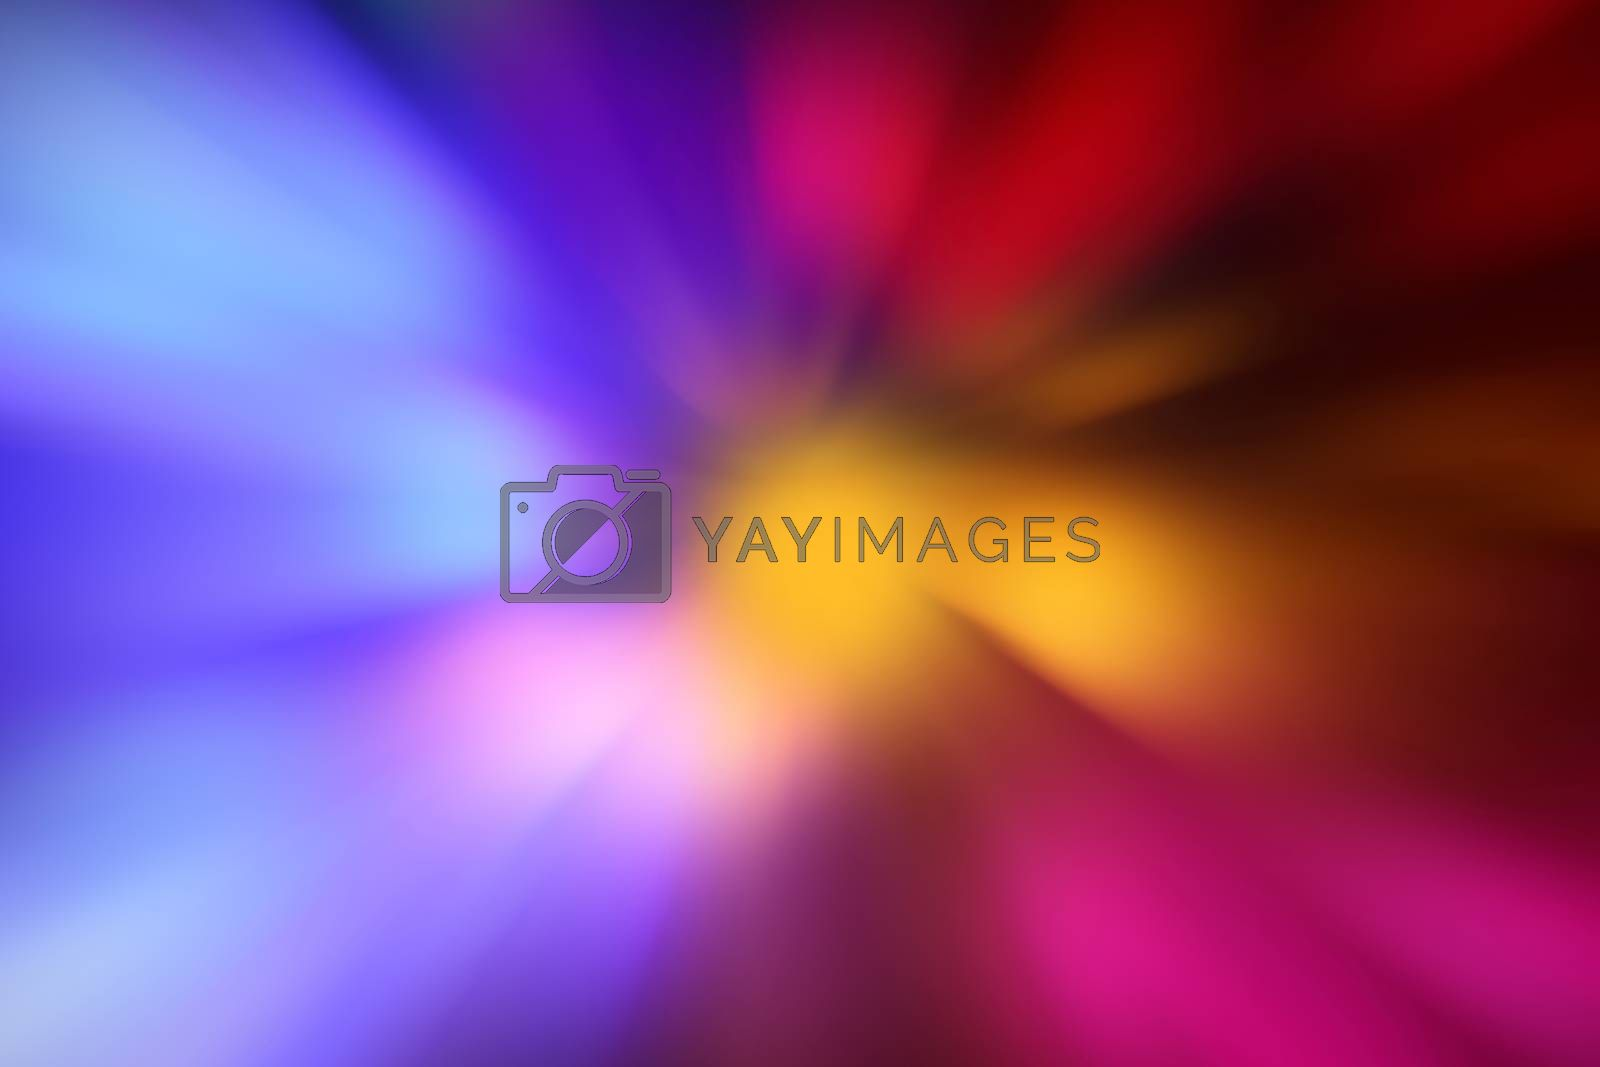 Zoom, Blue Pink light Zoom effect background, Colorful radial gradient effect digital lighting power technology, LED Lighting effect zoom movement abstract, Night Lighting Festival red dark Background